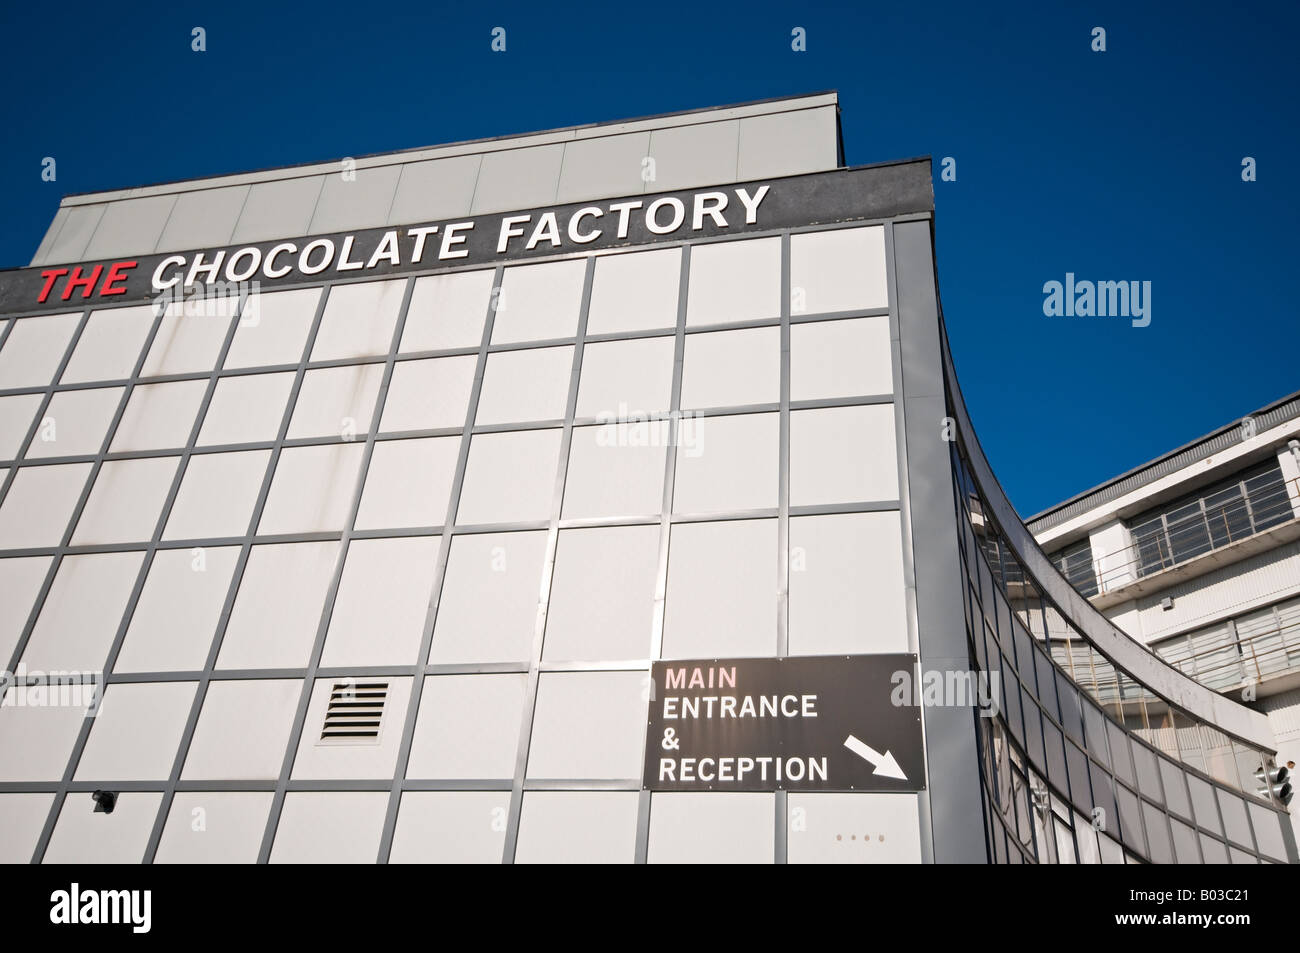 The Chocolate Factory Wood Green London Stock Photo